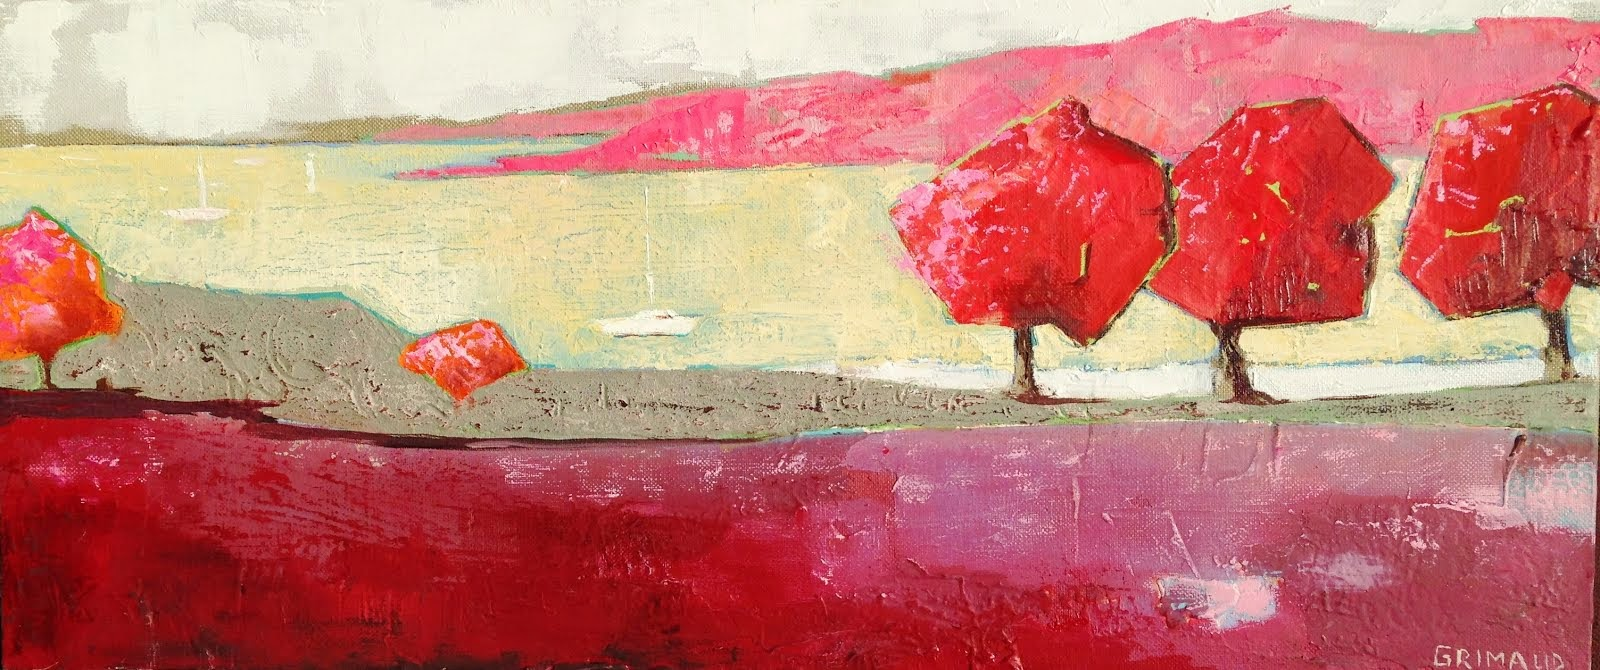 Rive rouge (70x30)